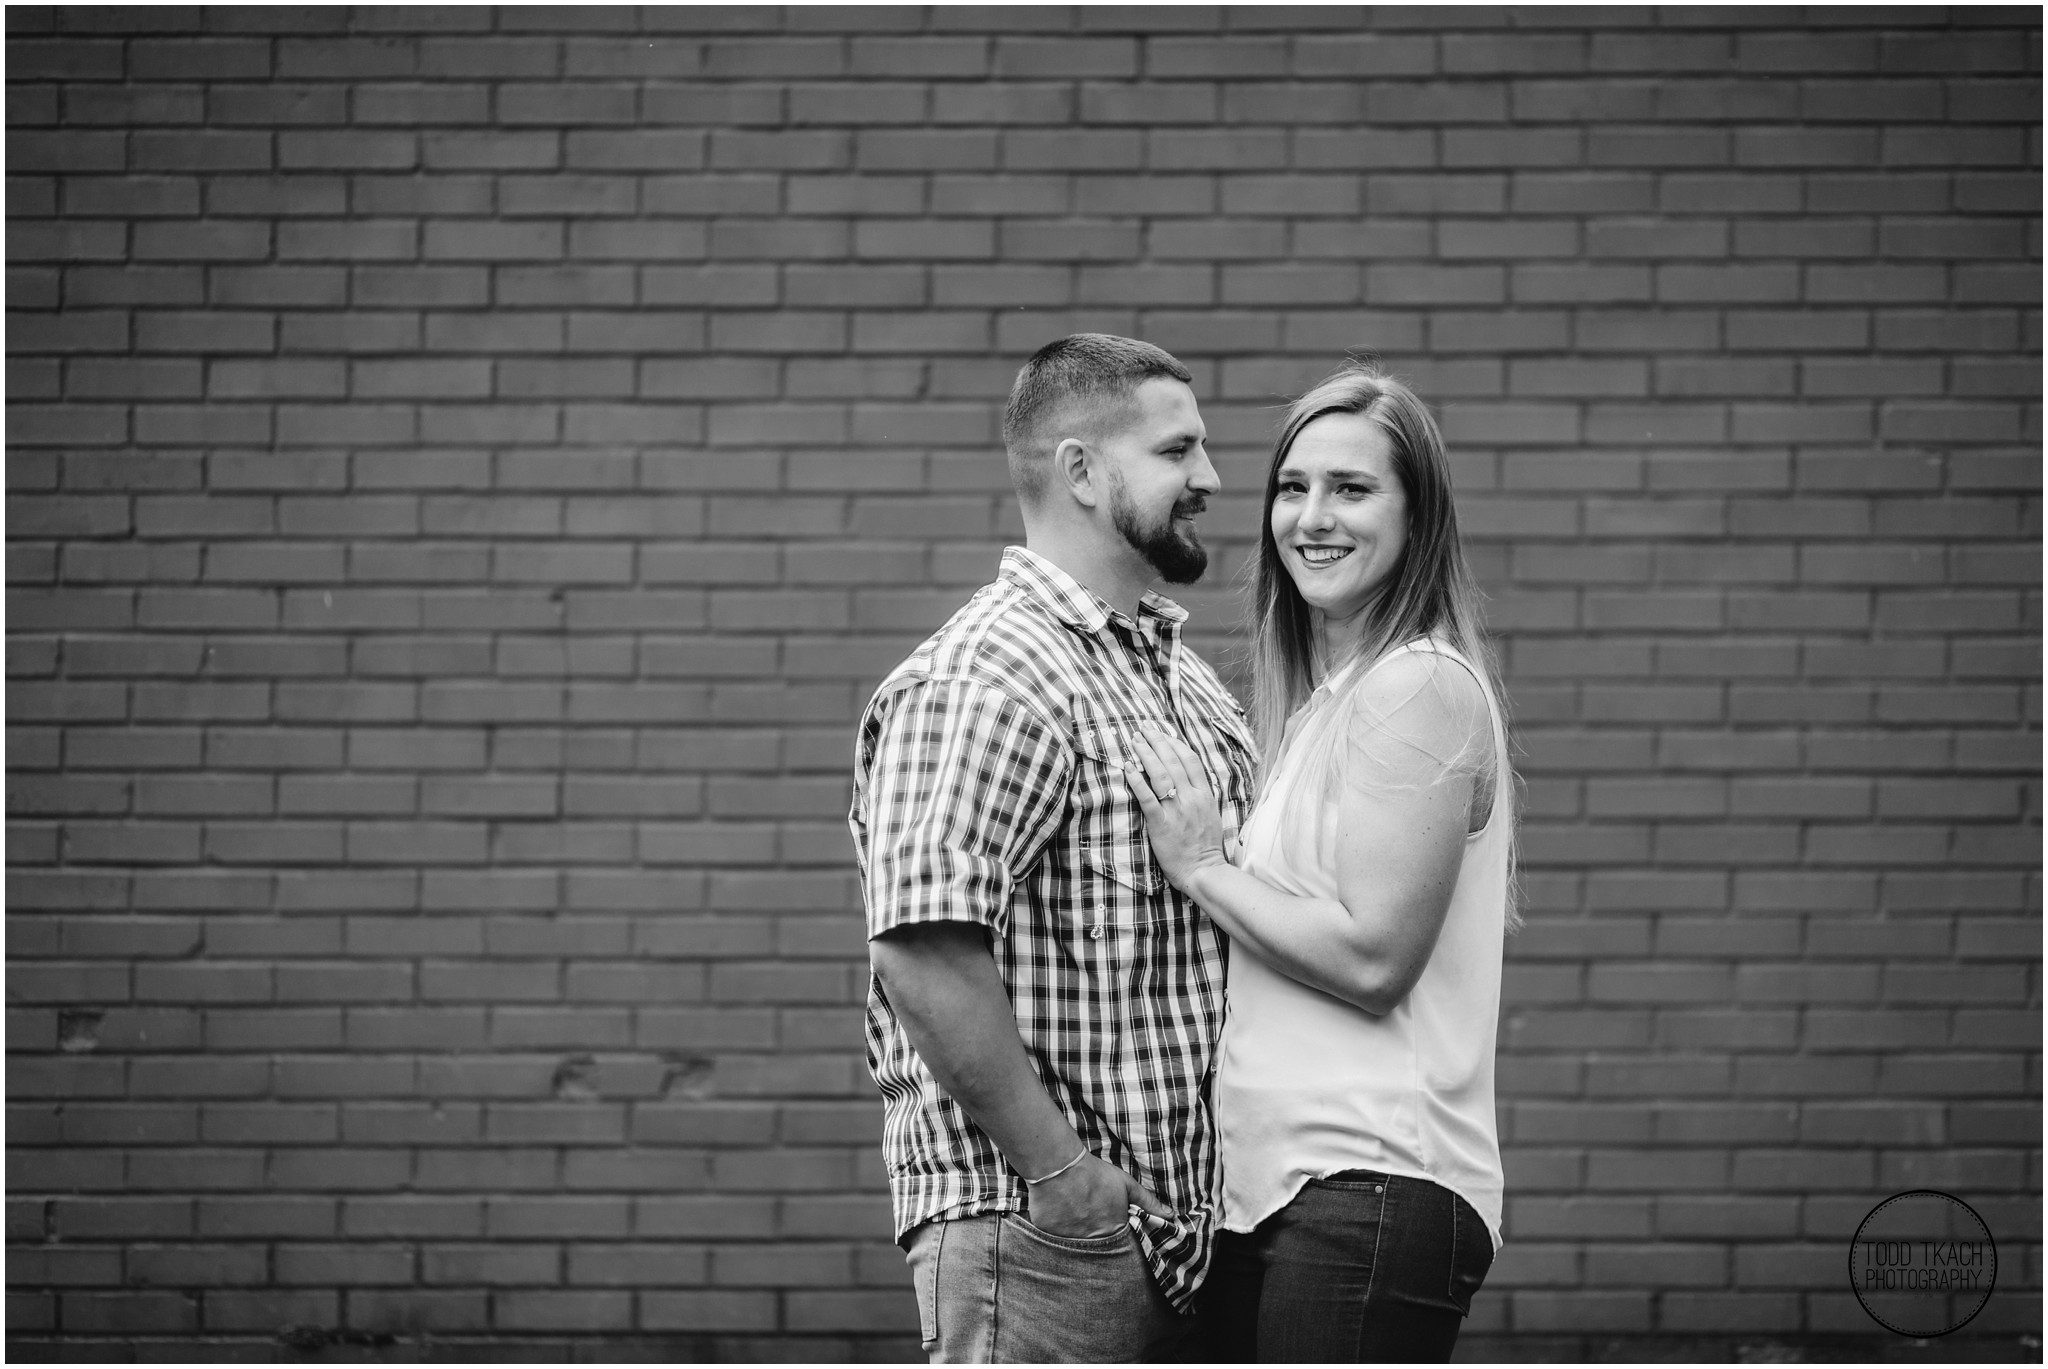 Kim & Brandon Engagement - Kim & Brandon Black and White Brick Portrait